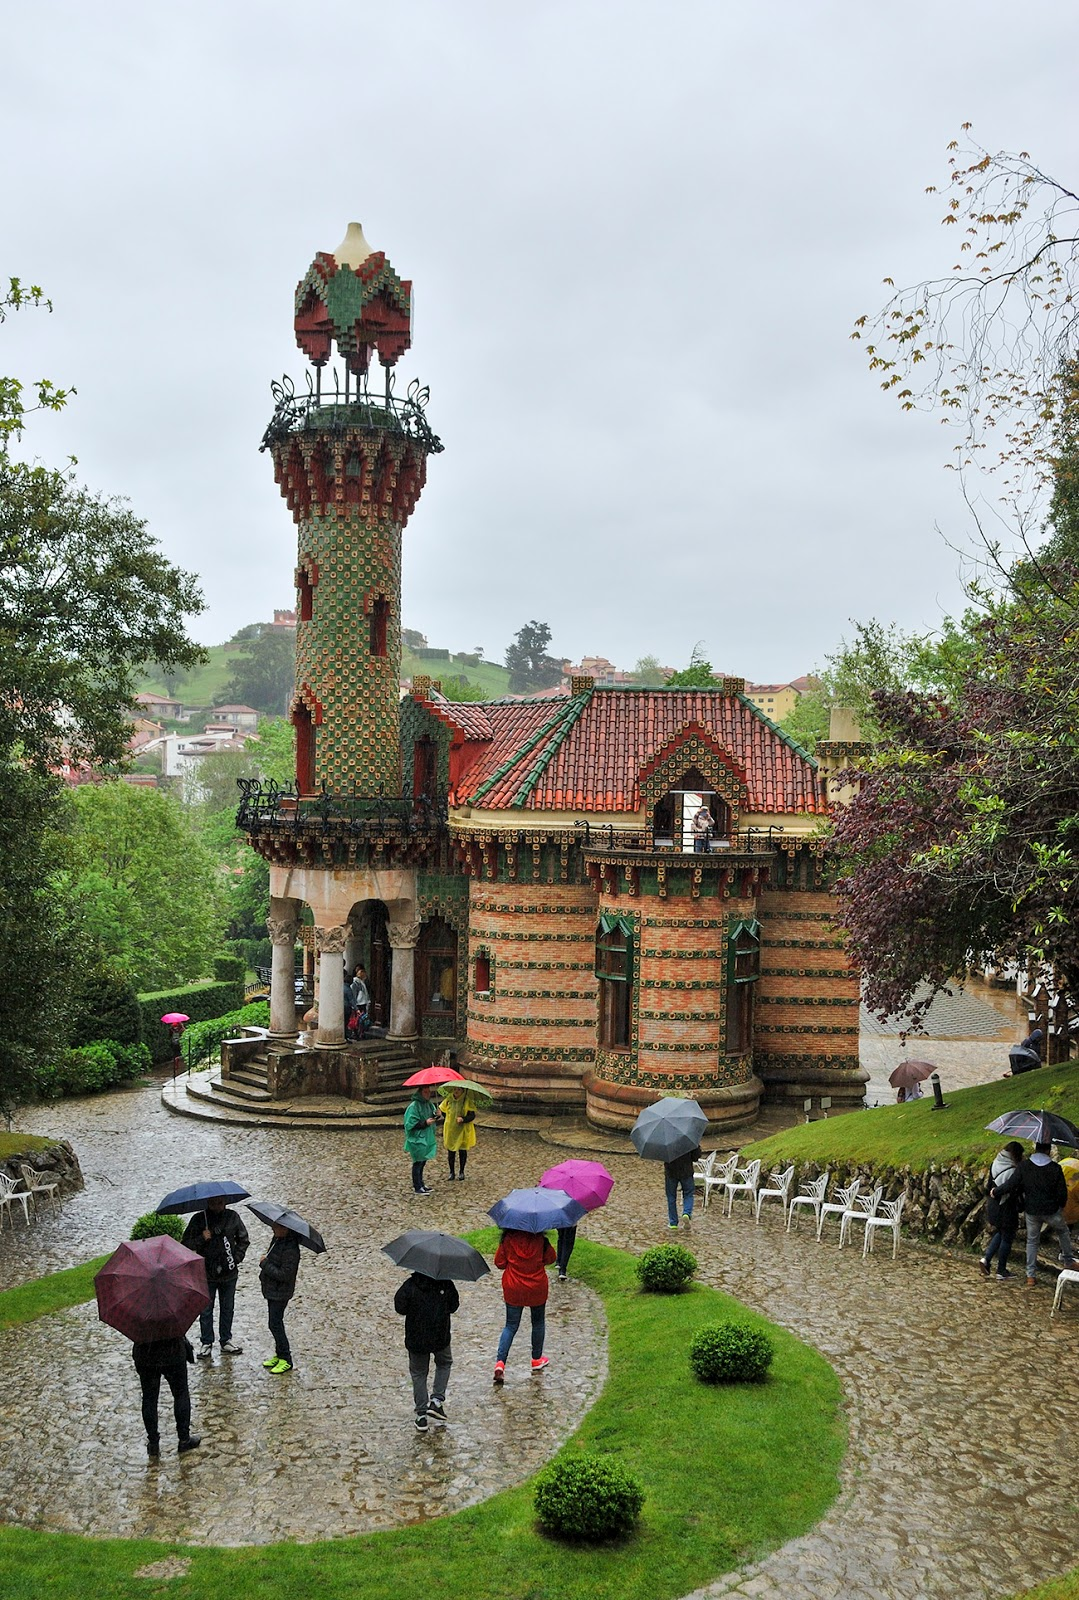 instagram worthy spots places spain instagrammable capricho gaudi comillas cantabria